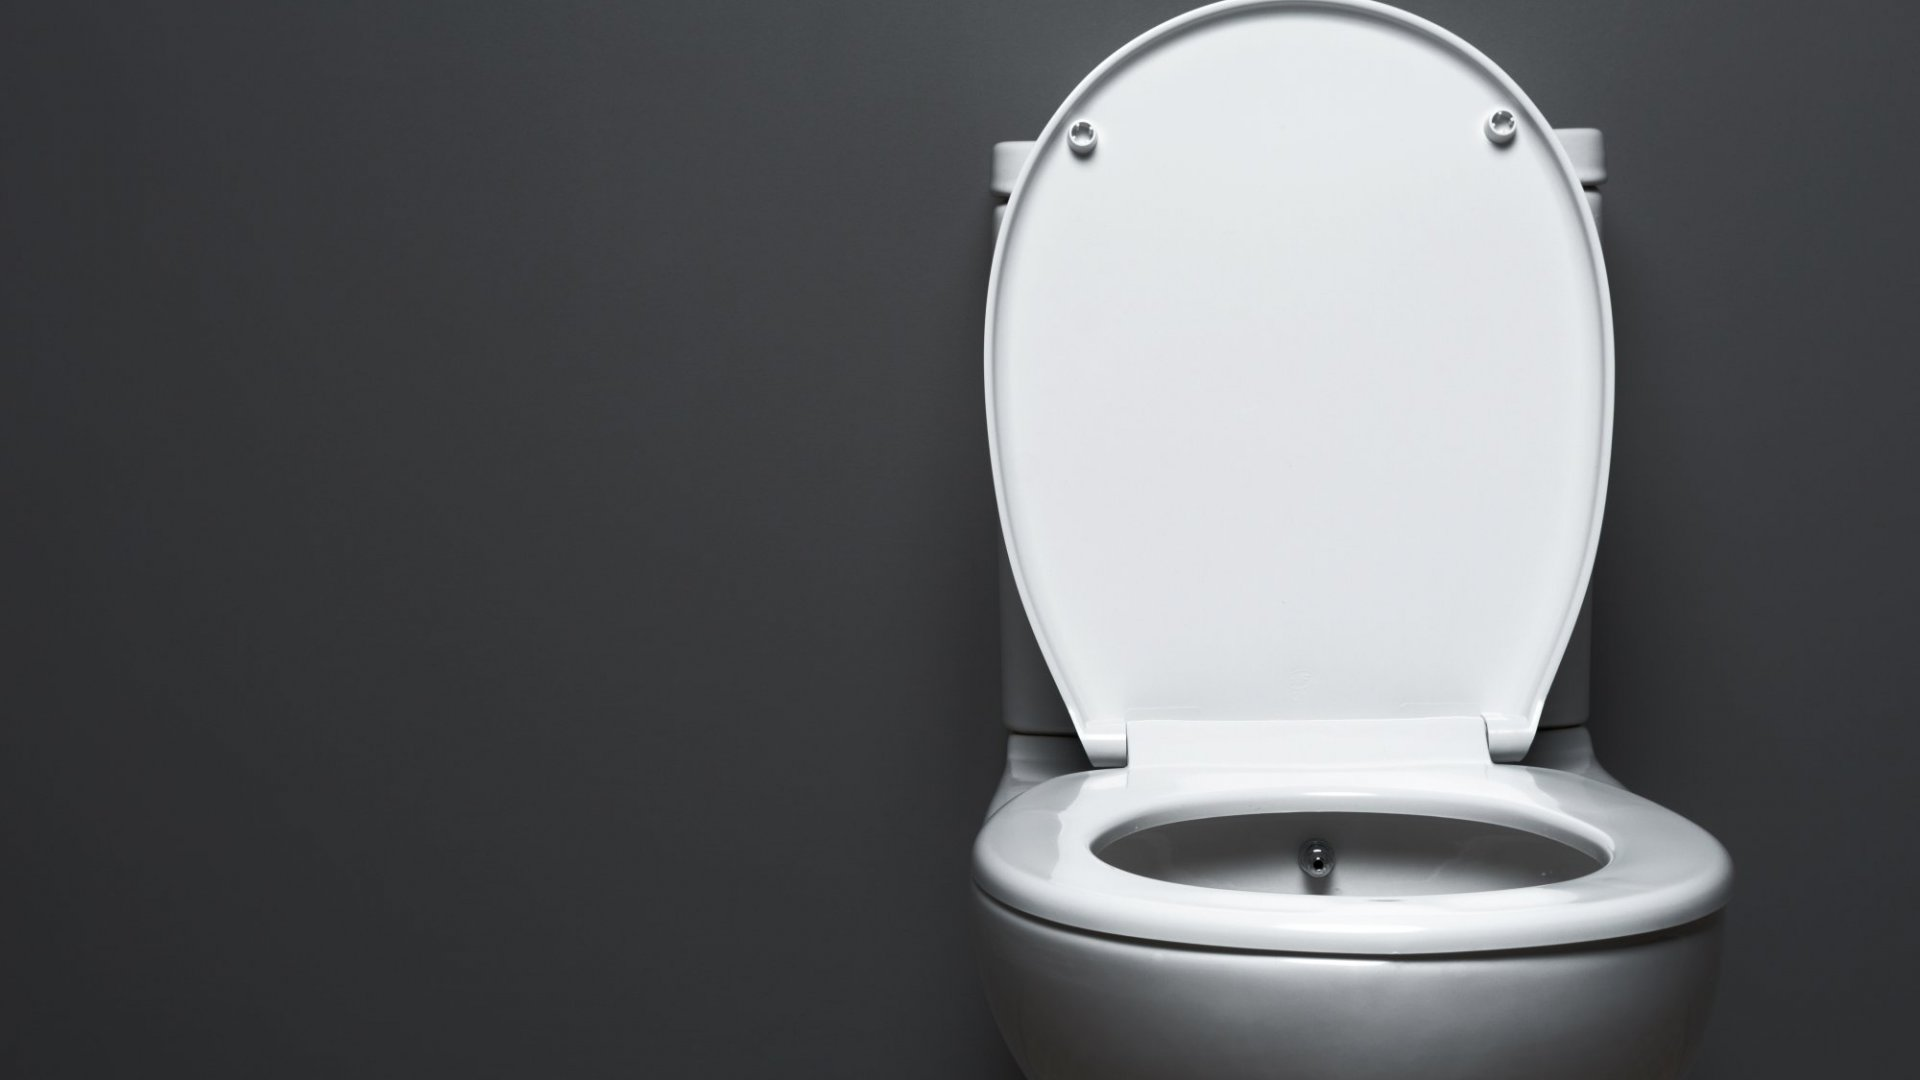 The Toilet Challenge Is an Example of 21st-Century Entrepreneurship